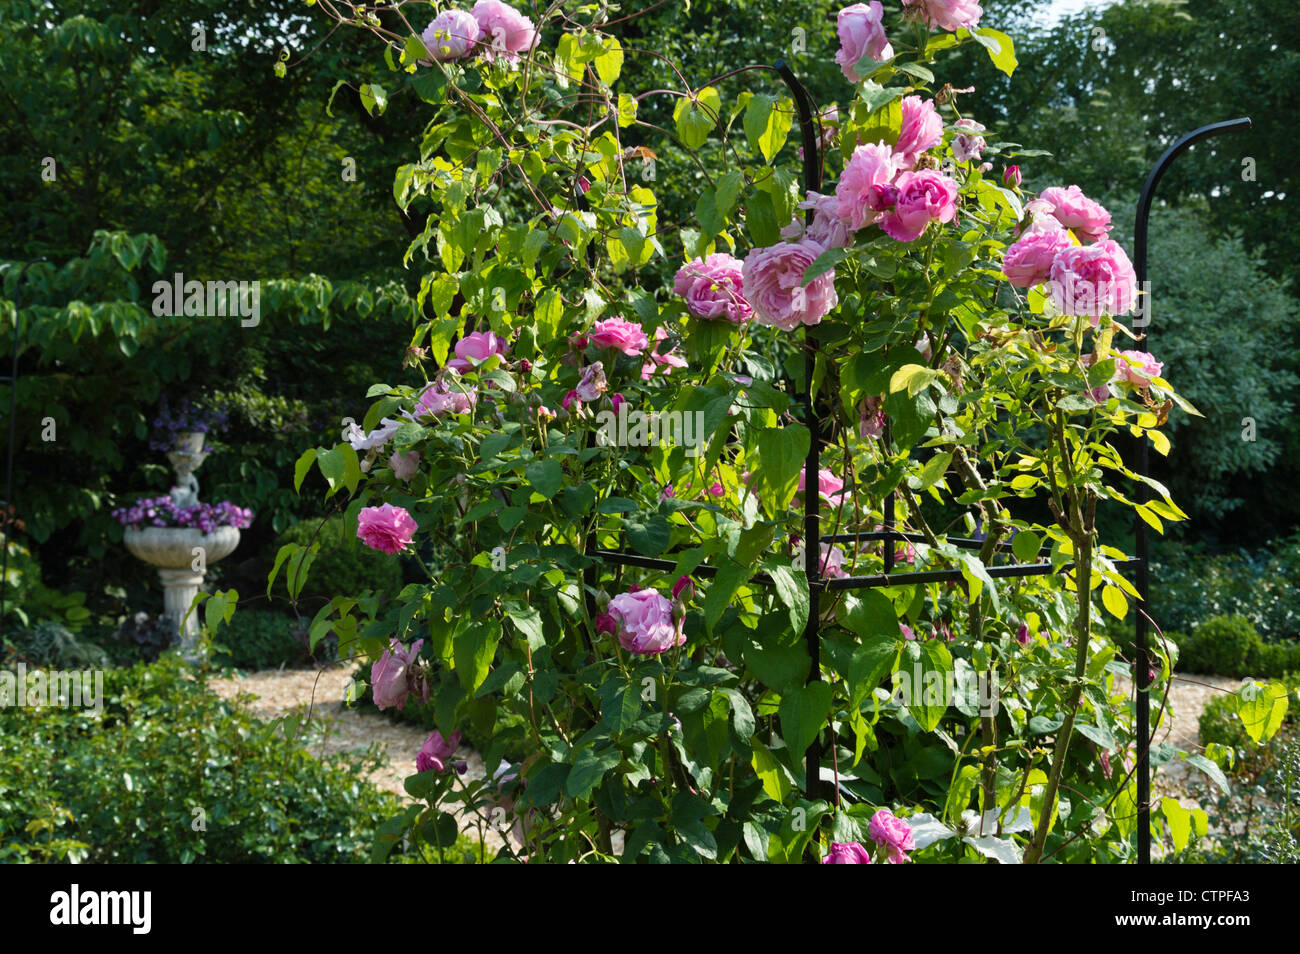 English Rose Rosa Gertrude Jekyll With Trellis In A Rose Garden Stock Photo Royalty Free